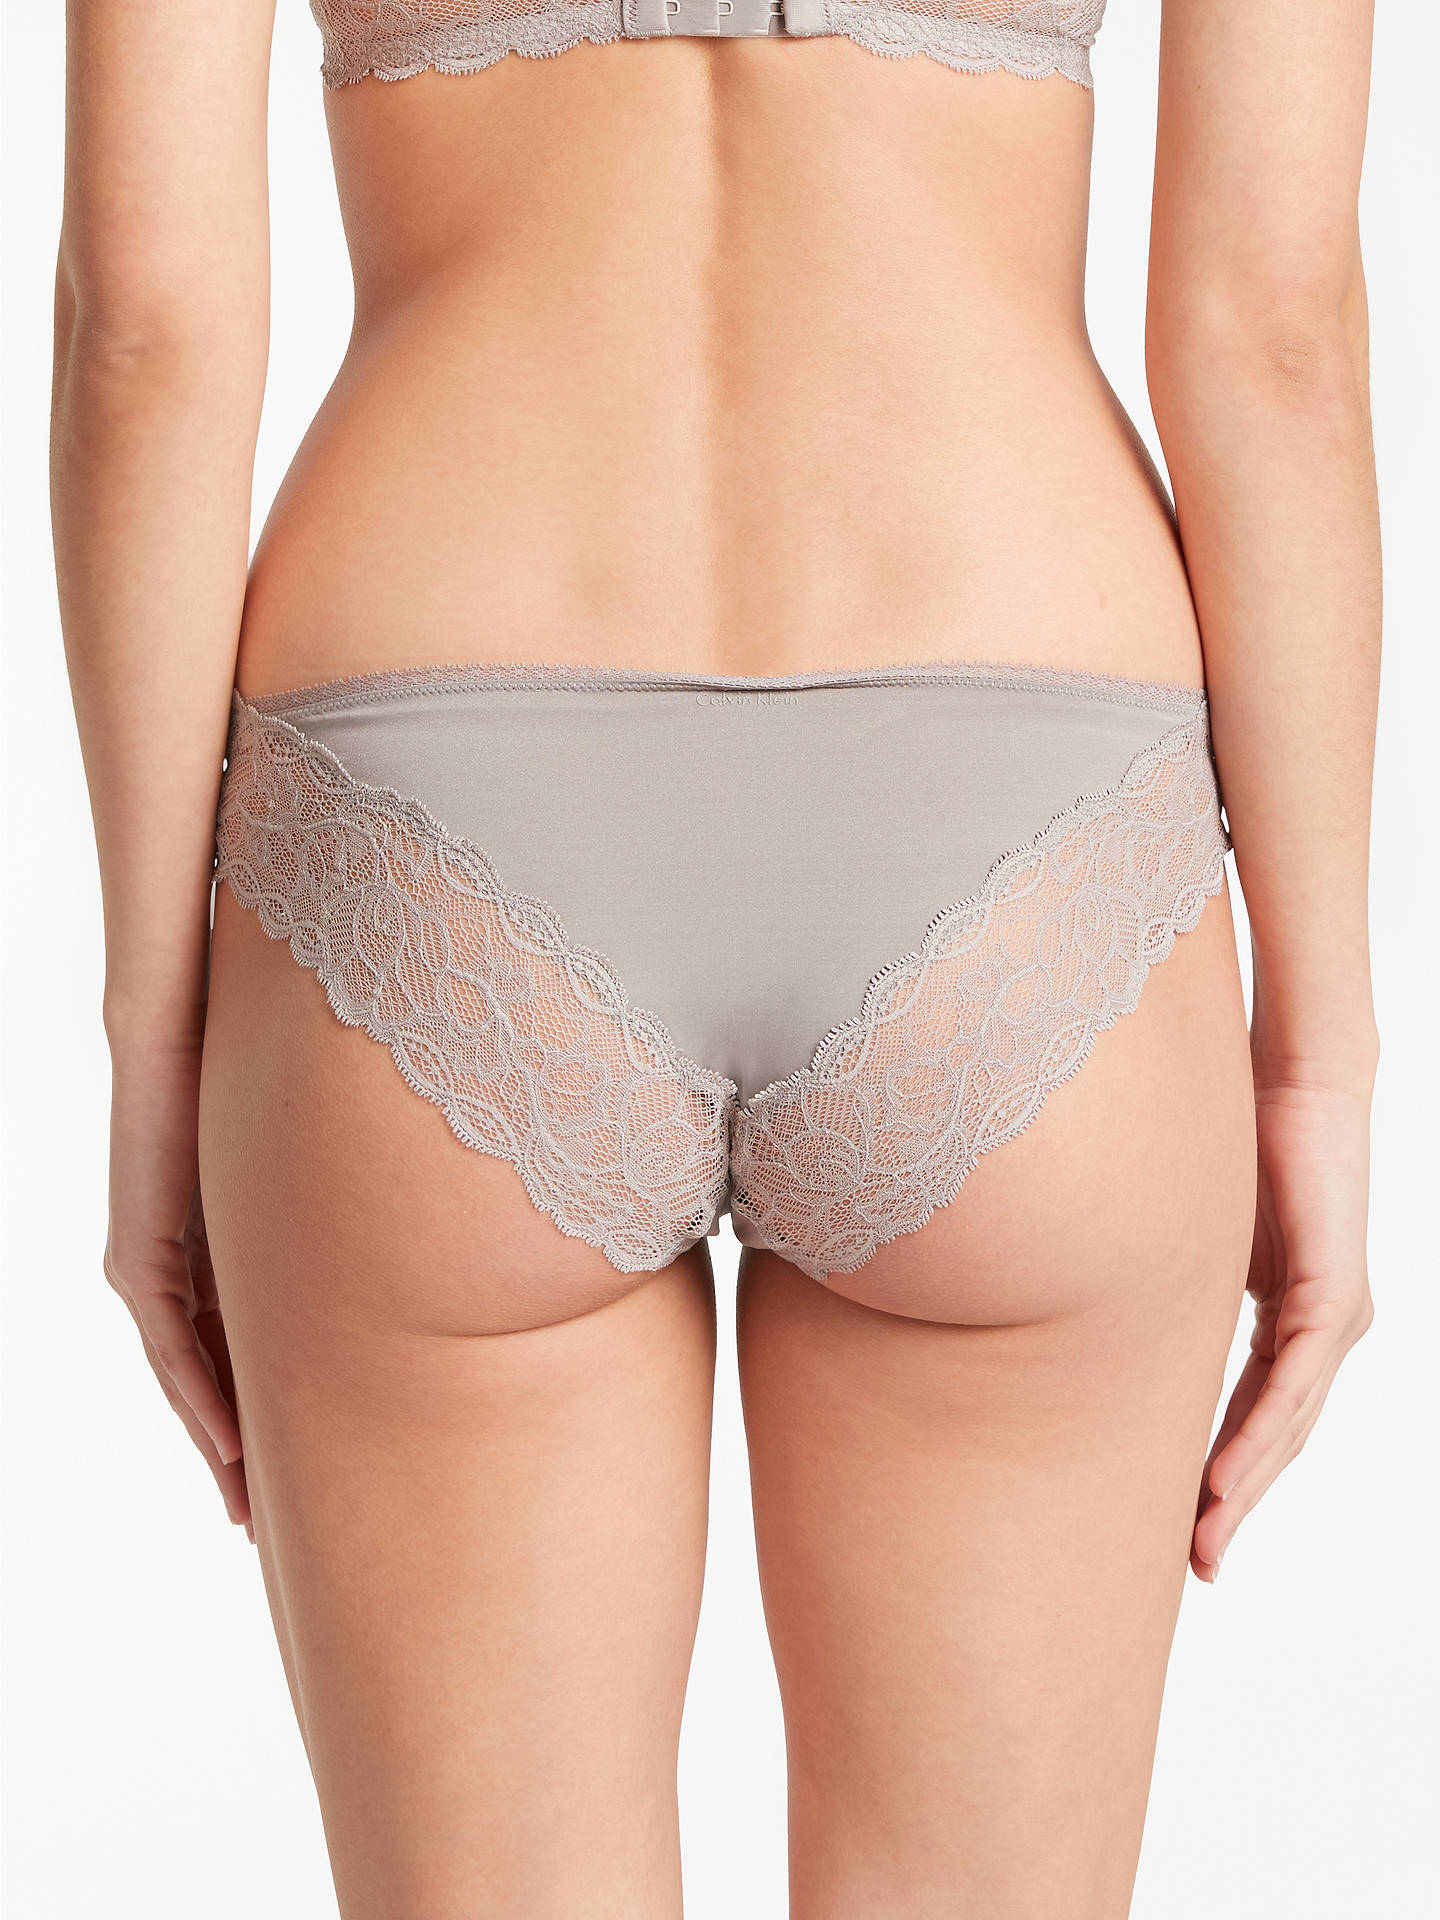 Buy Calvin Klein Underwear Seductive Comfort Lace Bikini Briefs, Grey Sand, L Online at johnlewis.com